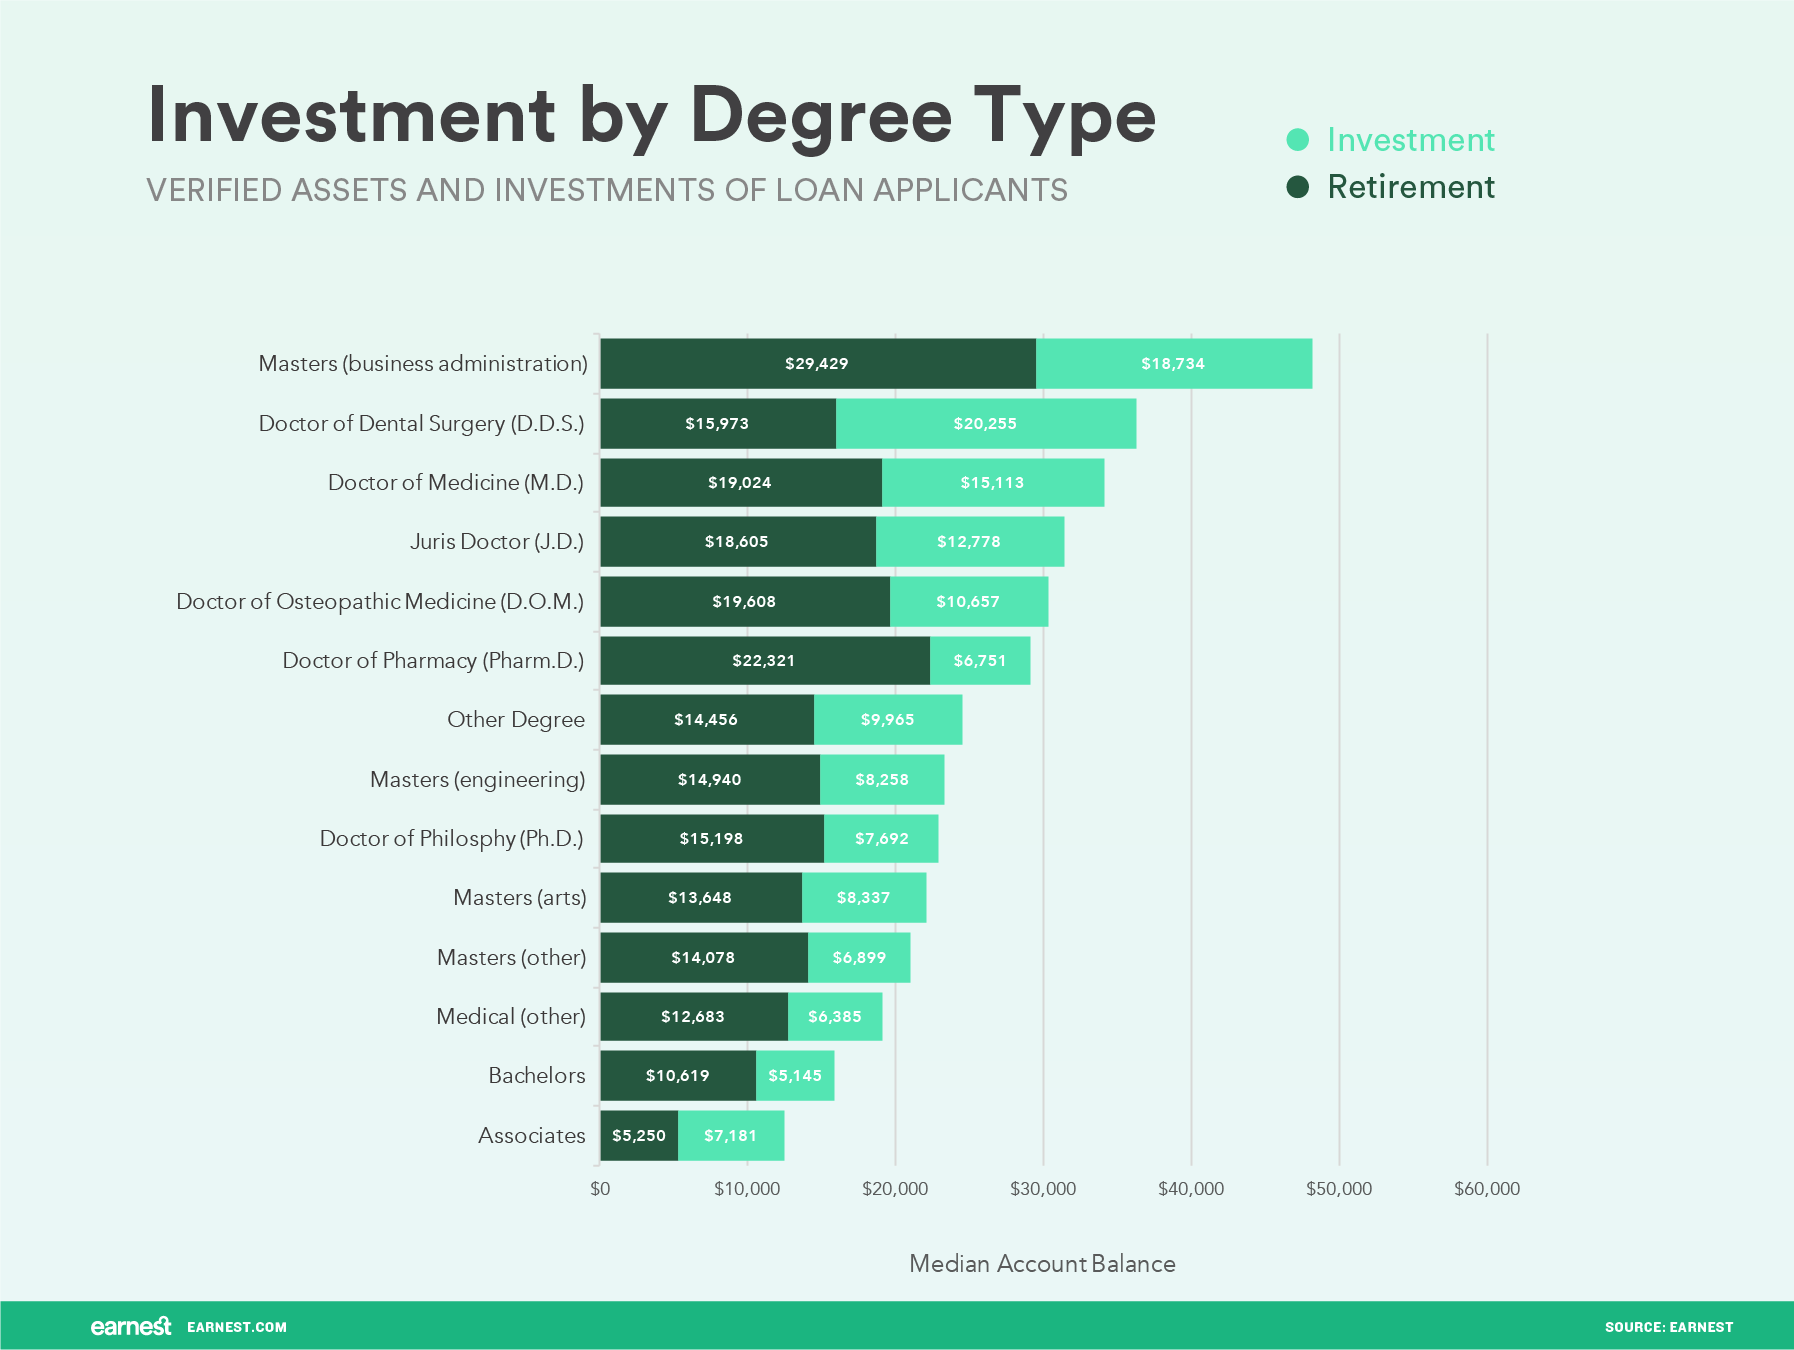 investment by degree type